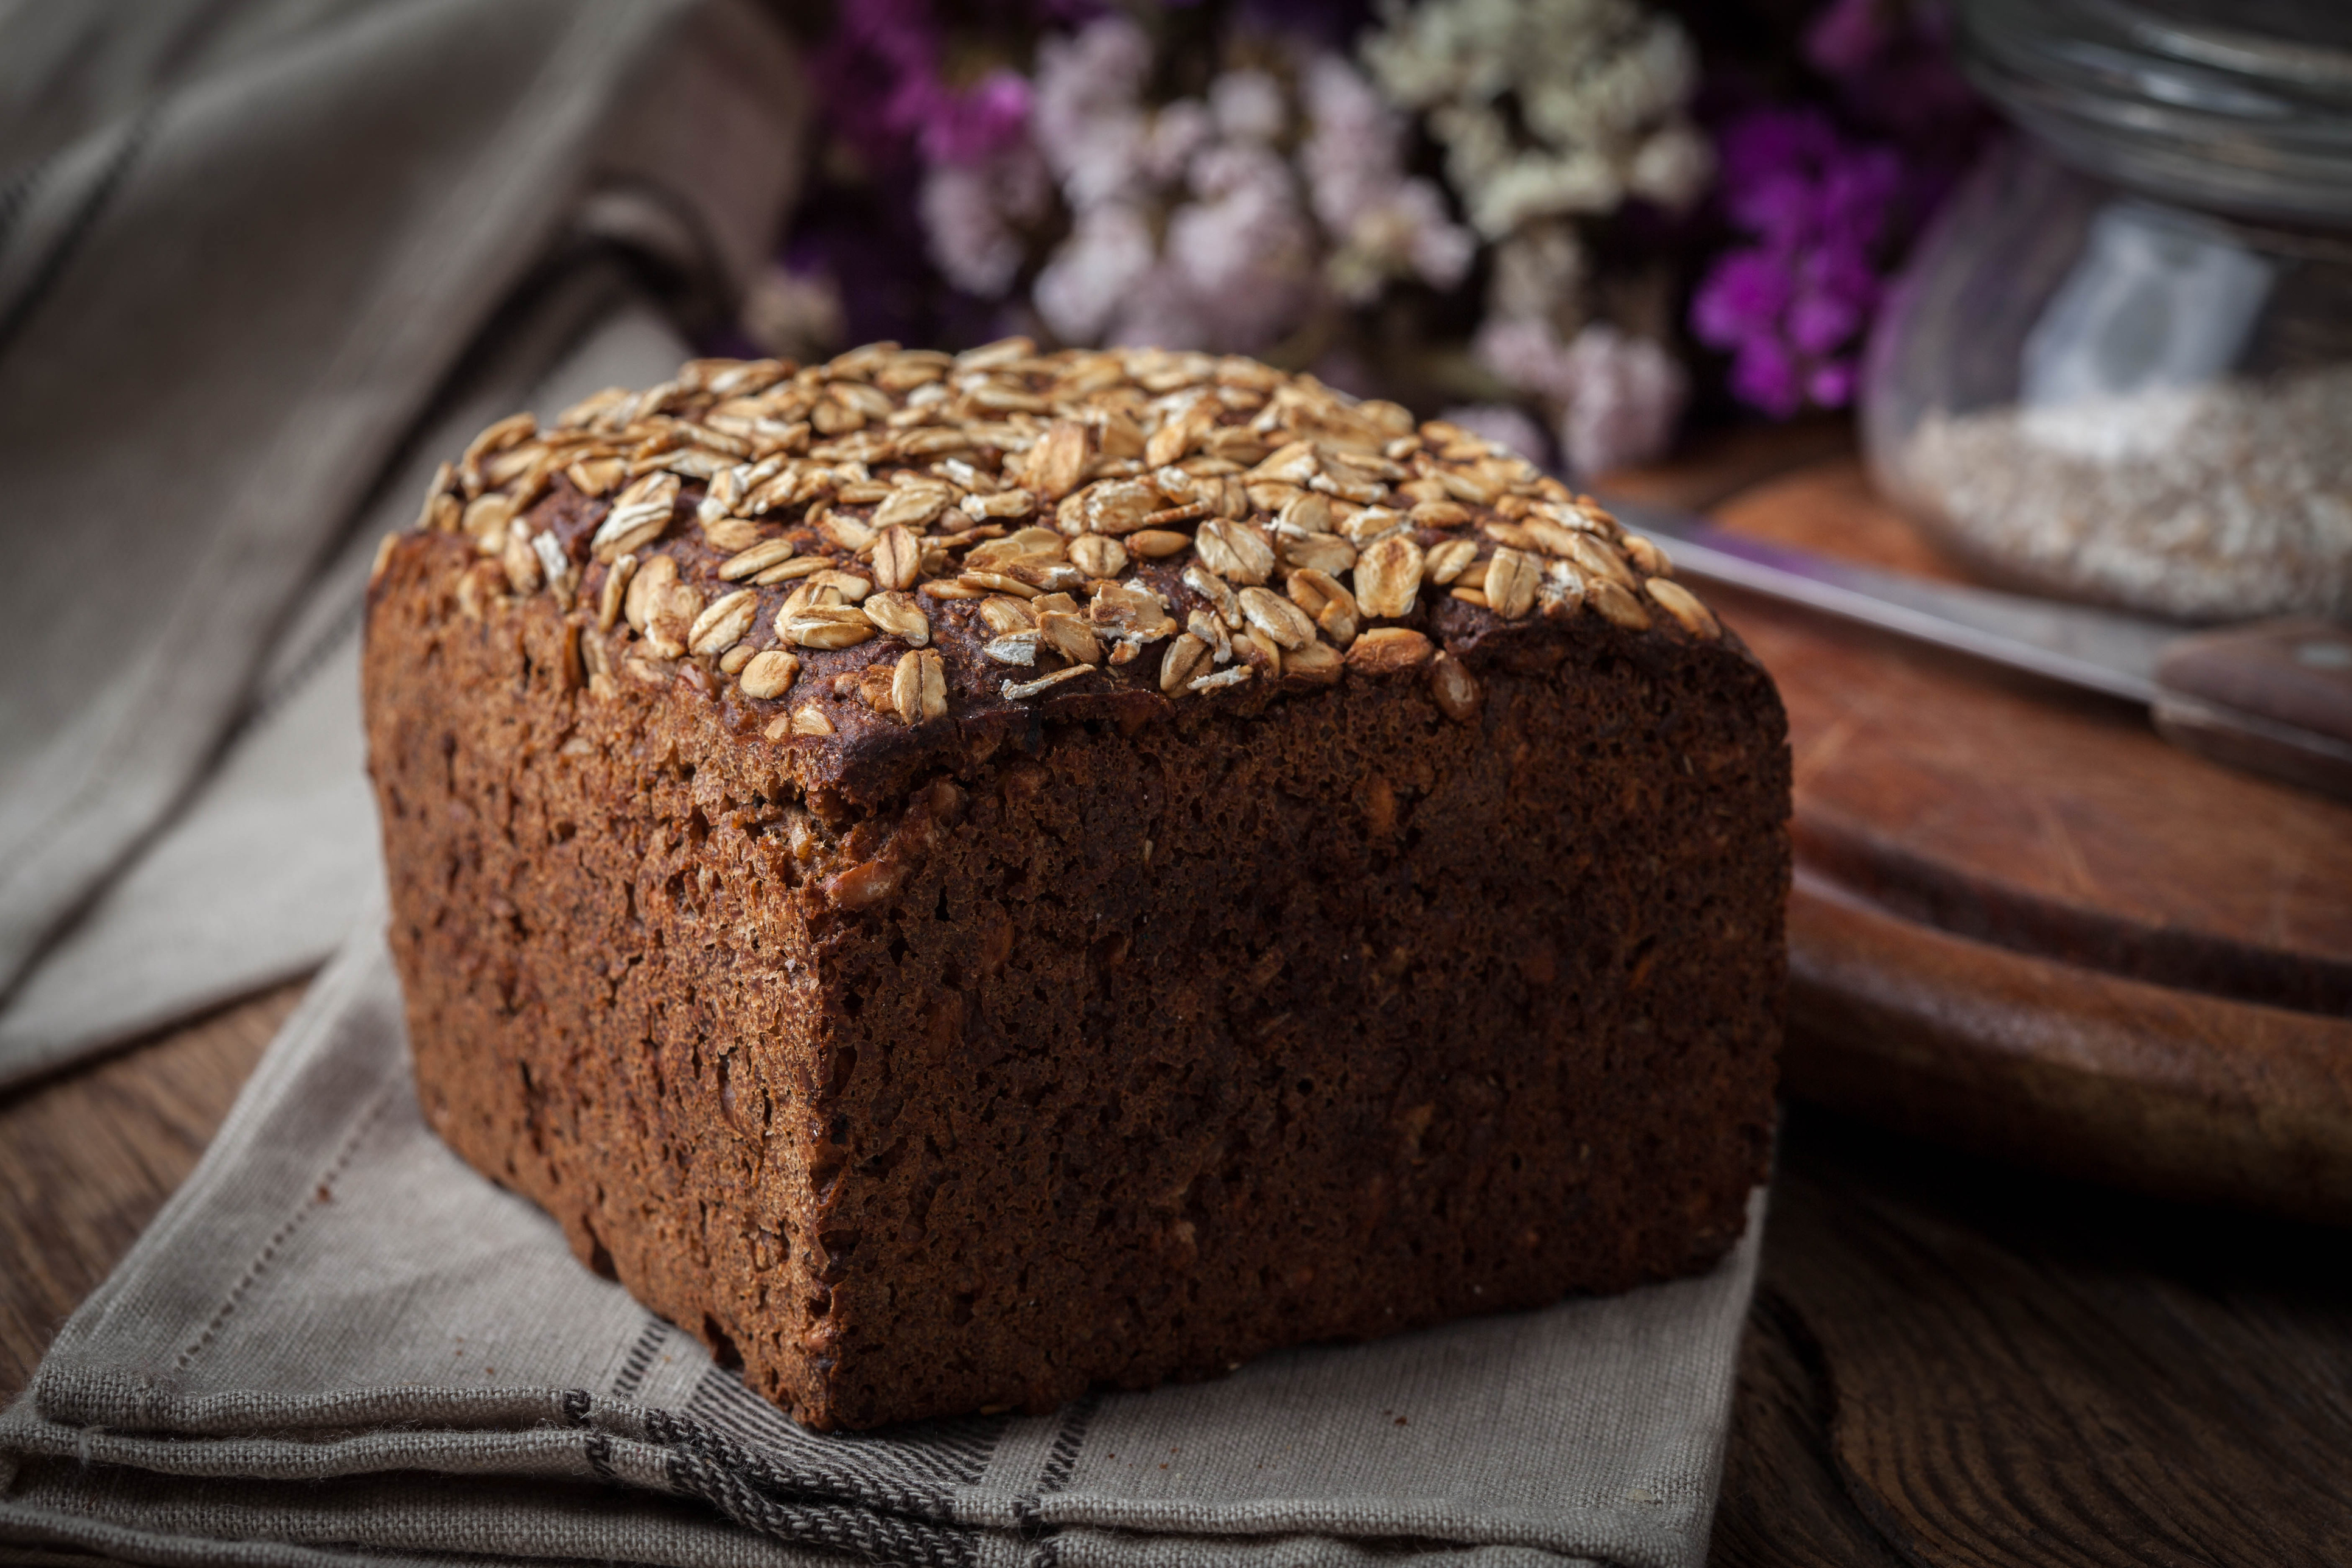 How To Make Ezekiel Bread At Home